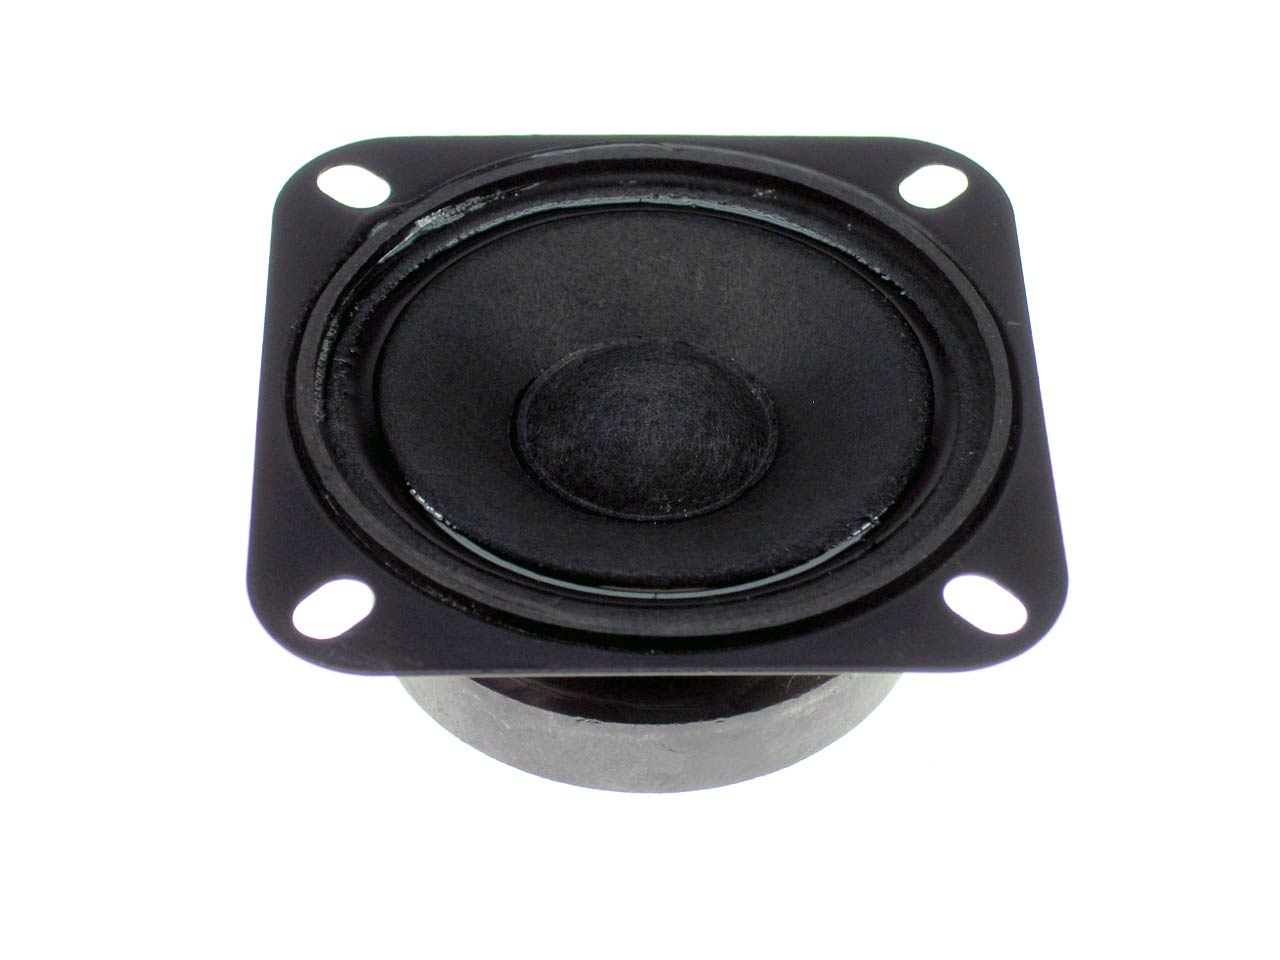 Speaker Replacements: The Madisound Speaker Store